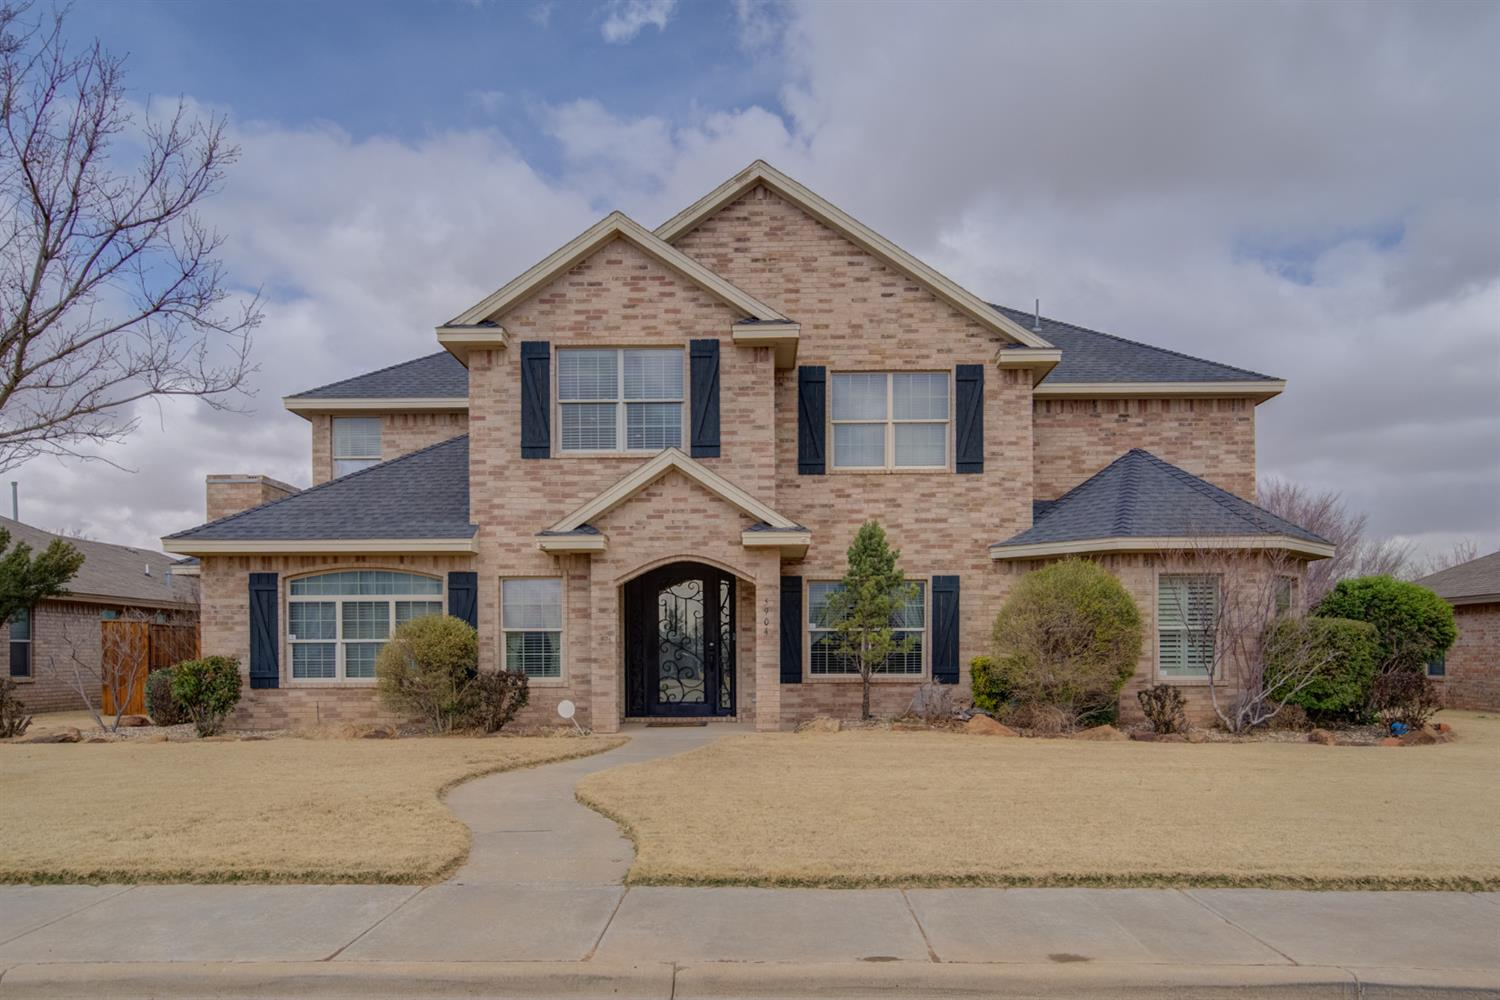 5904 110th Street, Lubbock in Lubbock County, TX 79424 Home for Sale